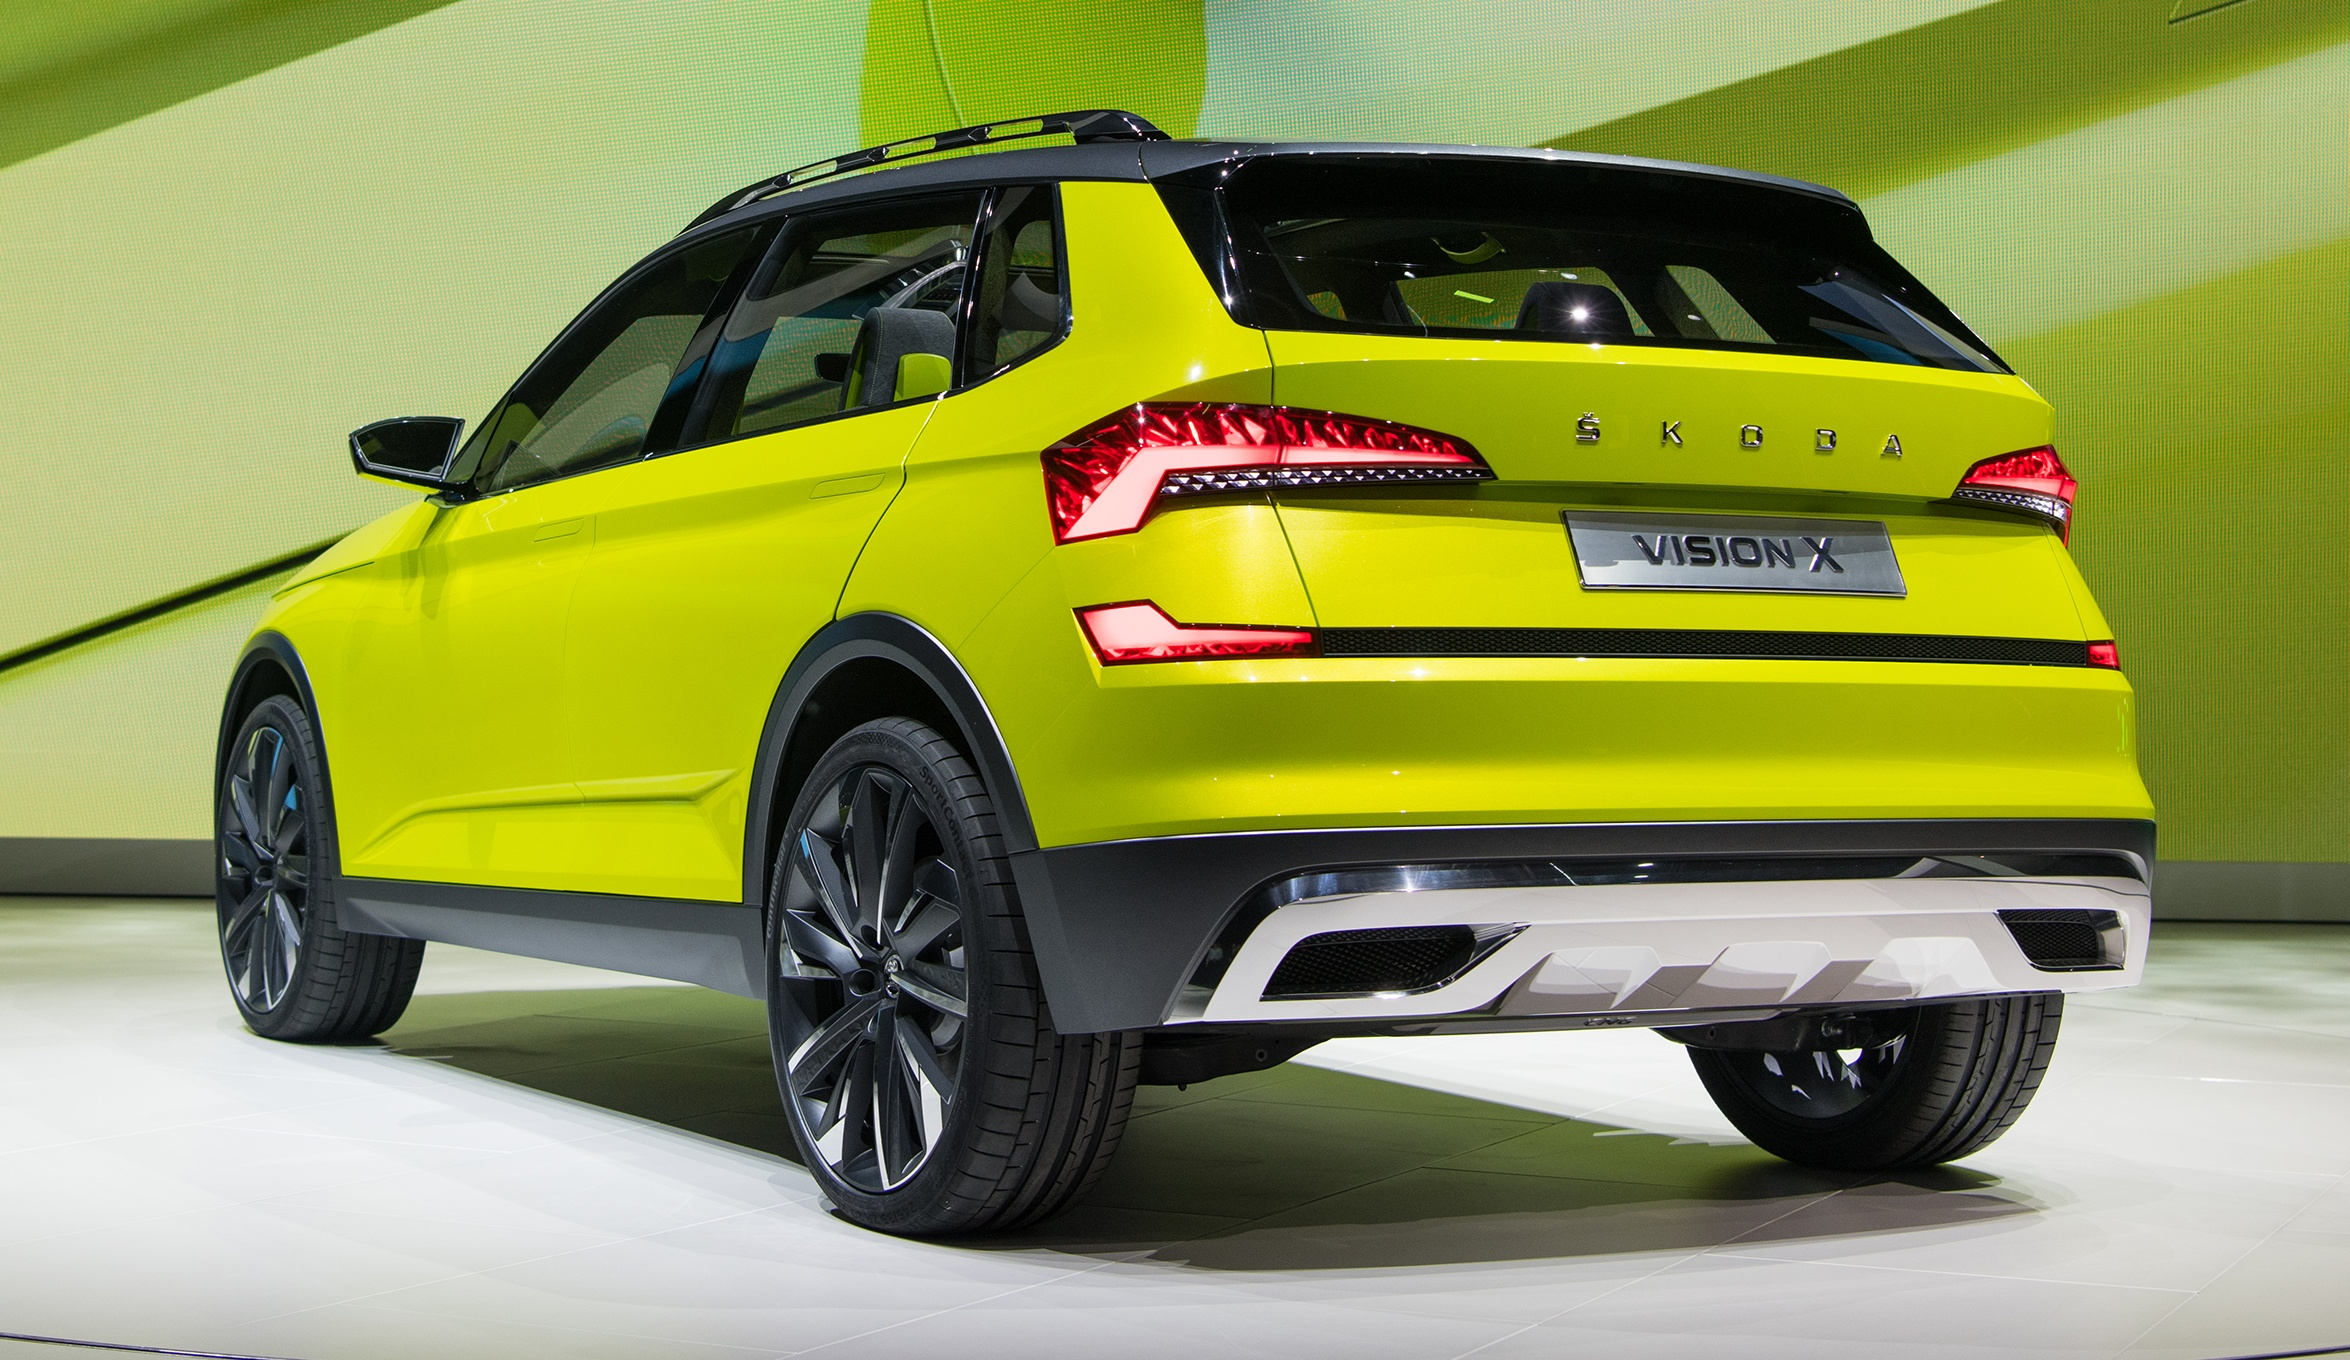 skoda vision x previews small suv cng hybrid drive. Black Bedroom Furniture Sets. Home Design Ideas